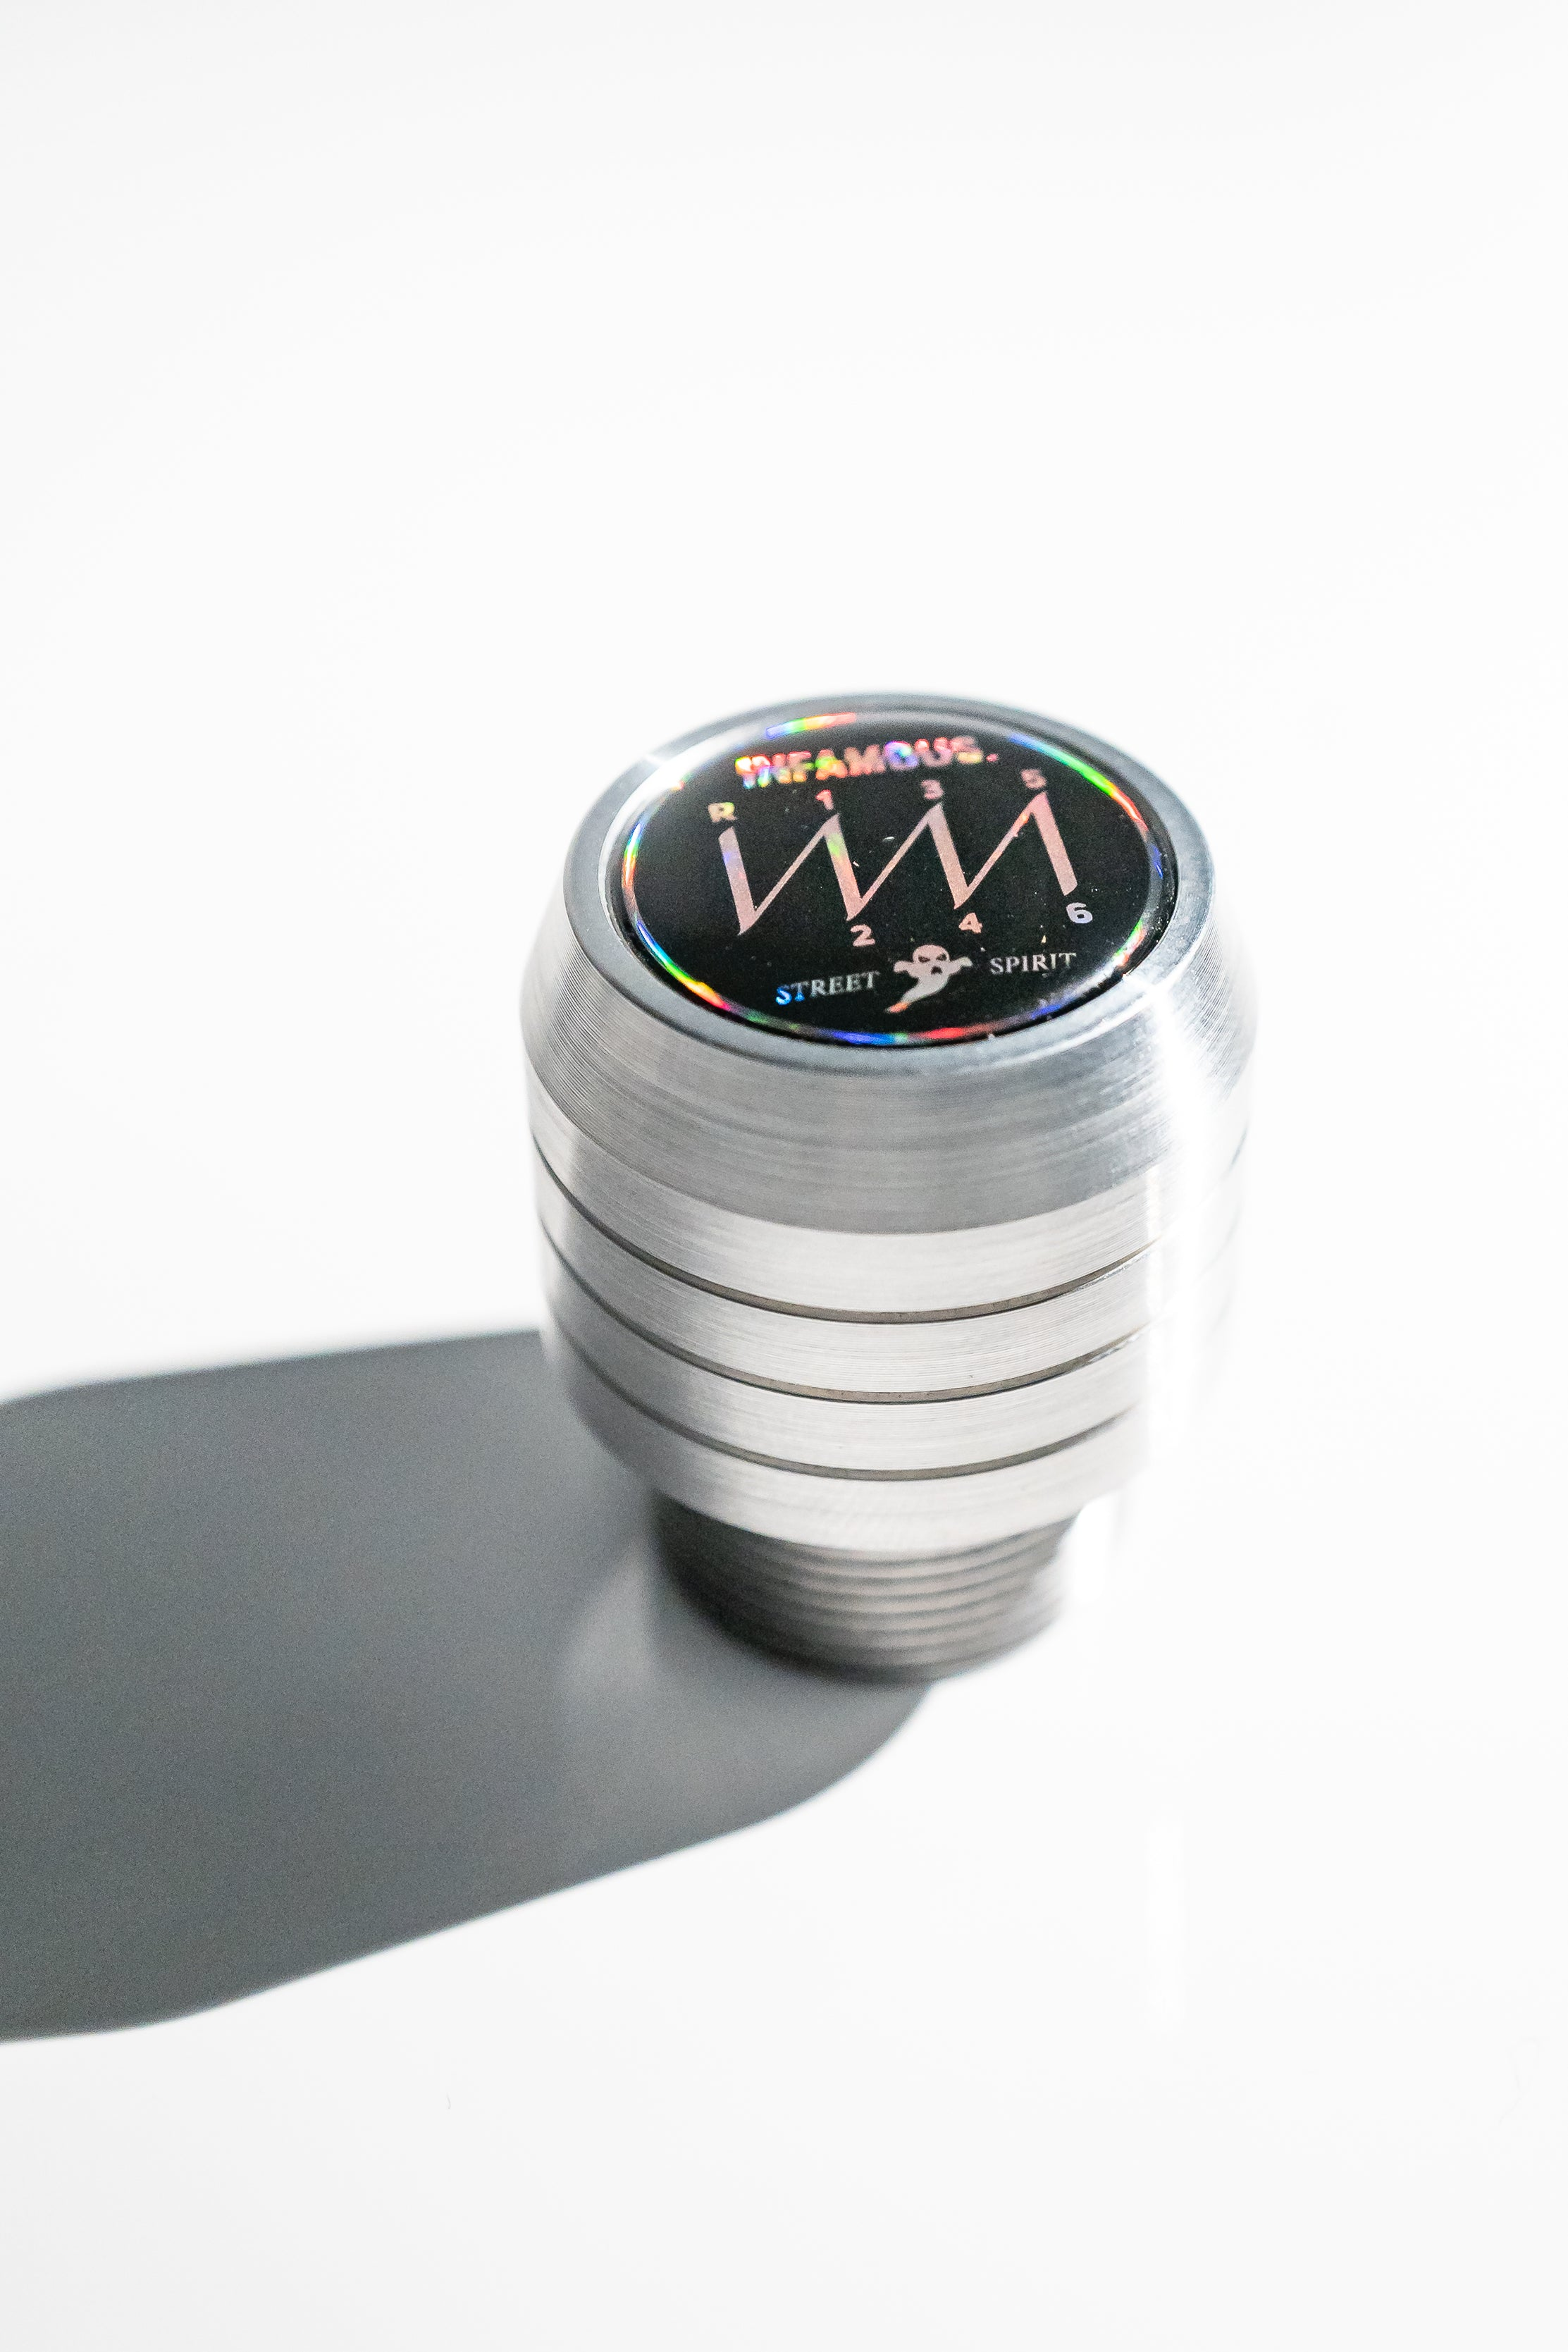 323 Modular Shift Knob // Silver // Black